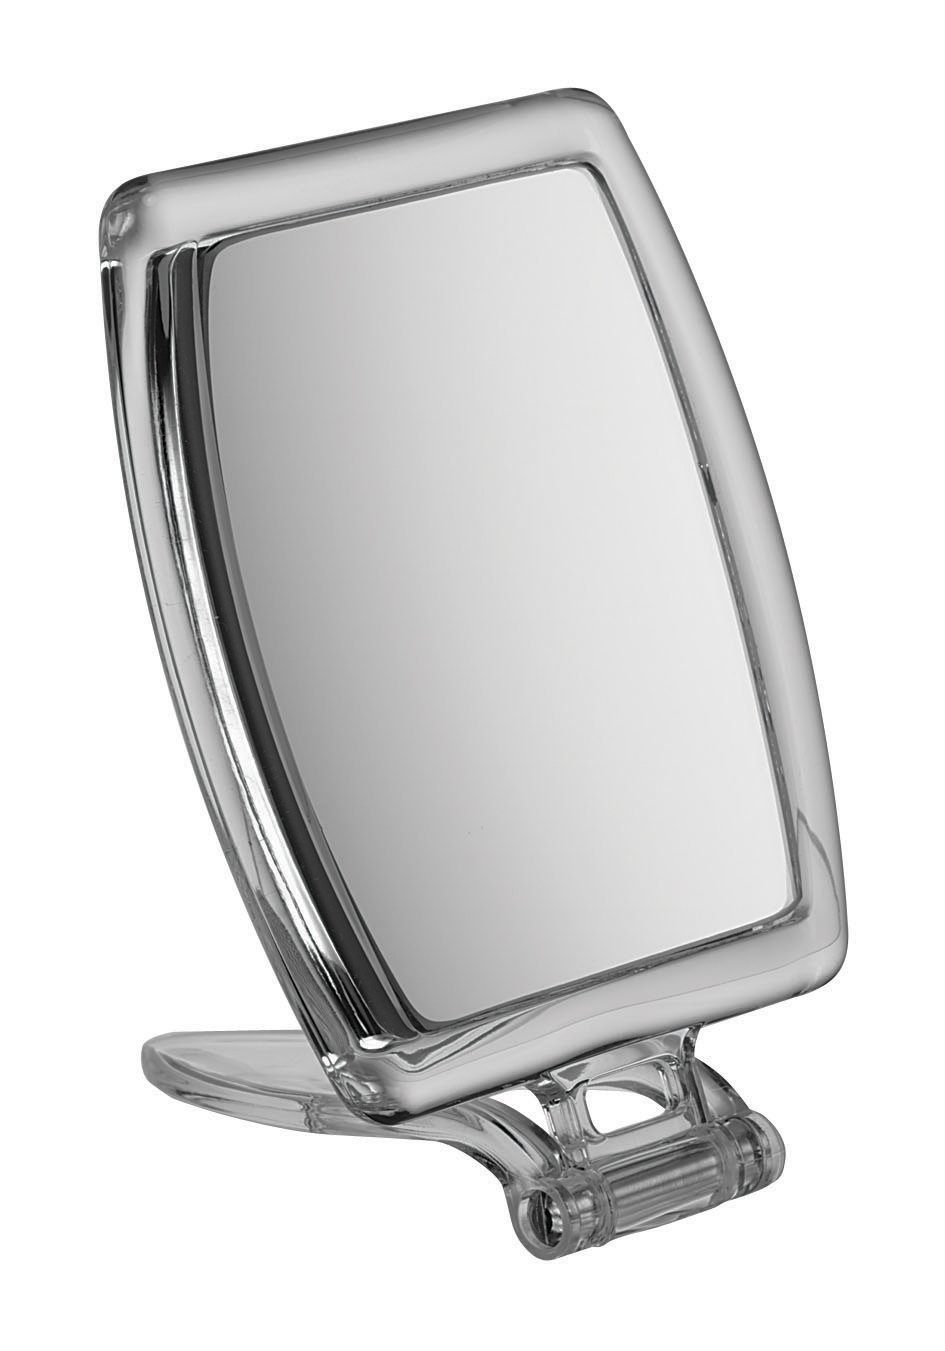 FMG Mirrors - Miroir de voyage rectangle grossissant x10 - 10 cm BeautyLand A004/10